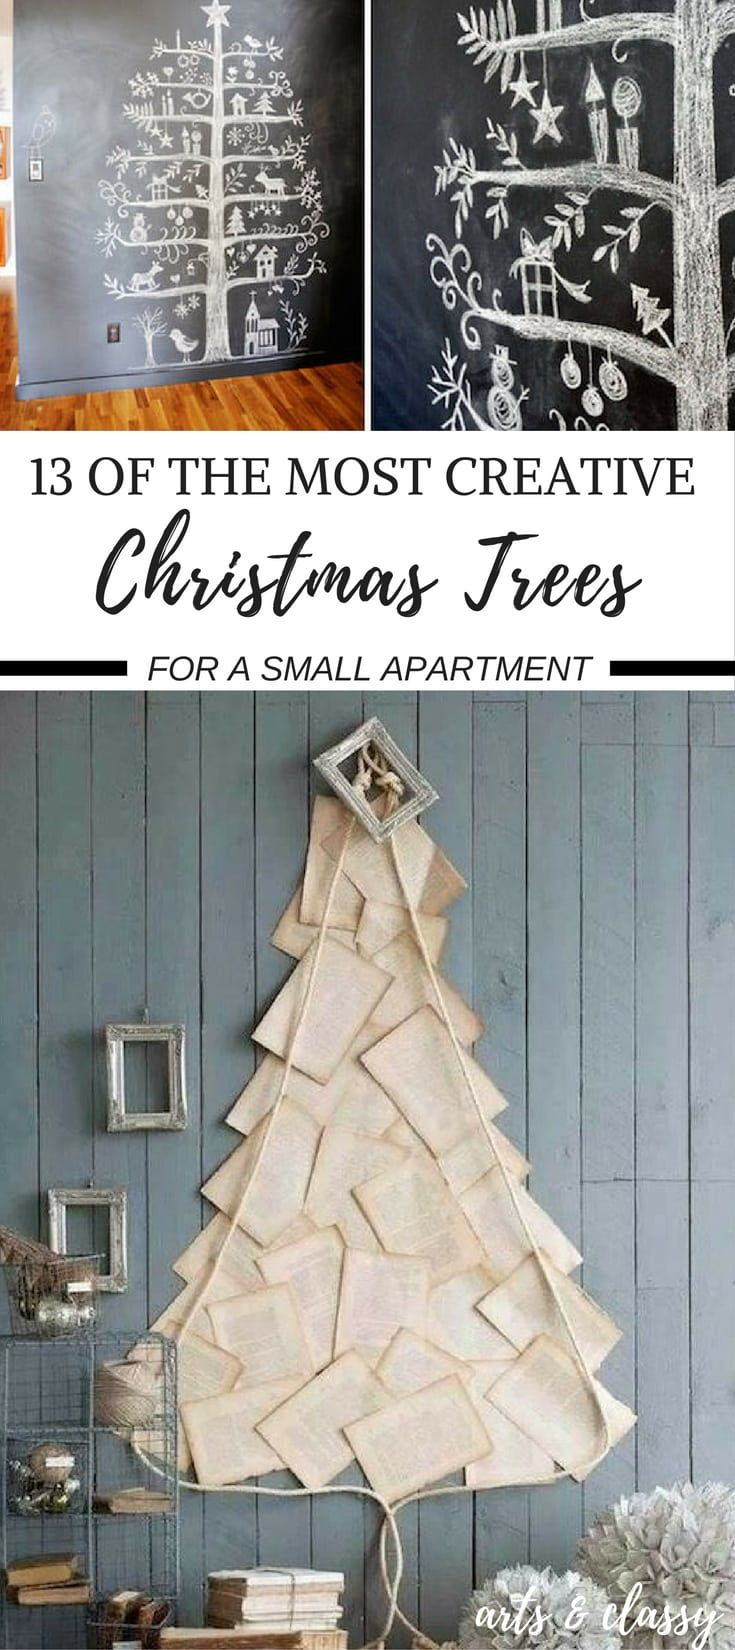 13 Creative ways to build a Christmas tree in small apartments   Arts and Classy